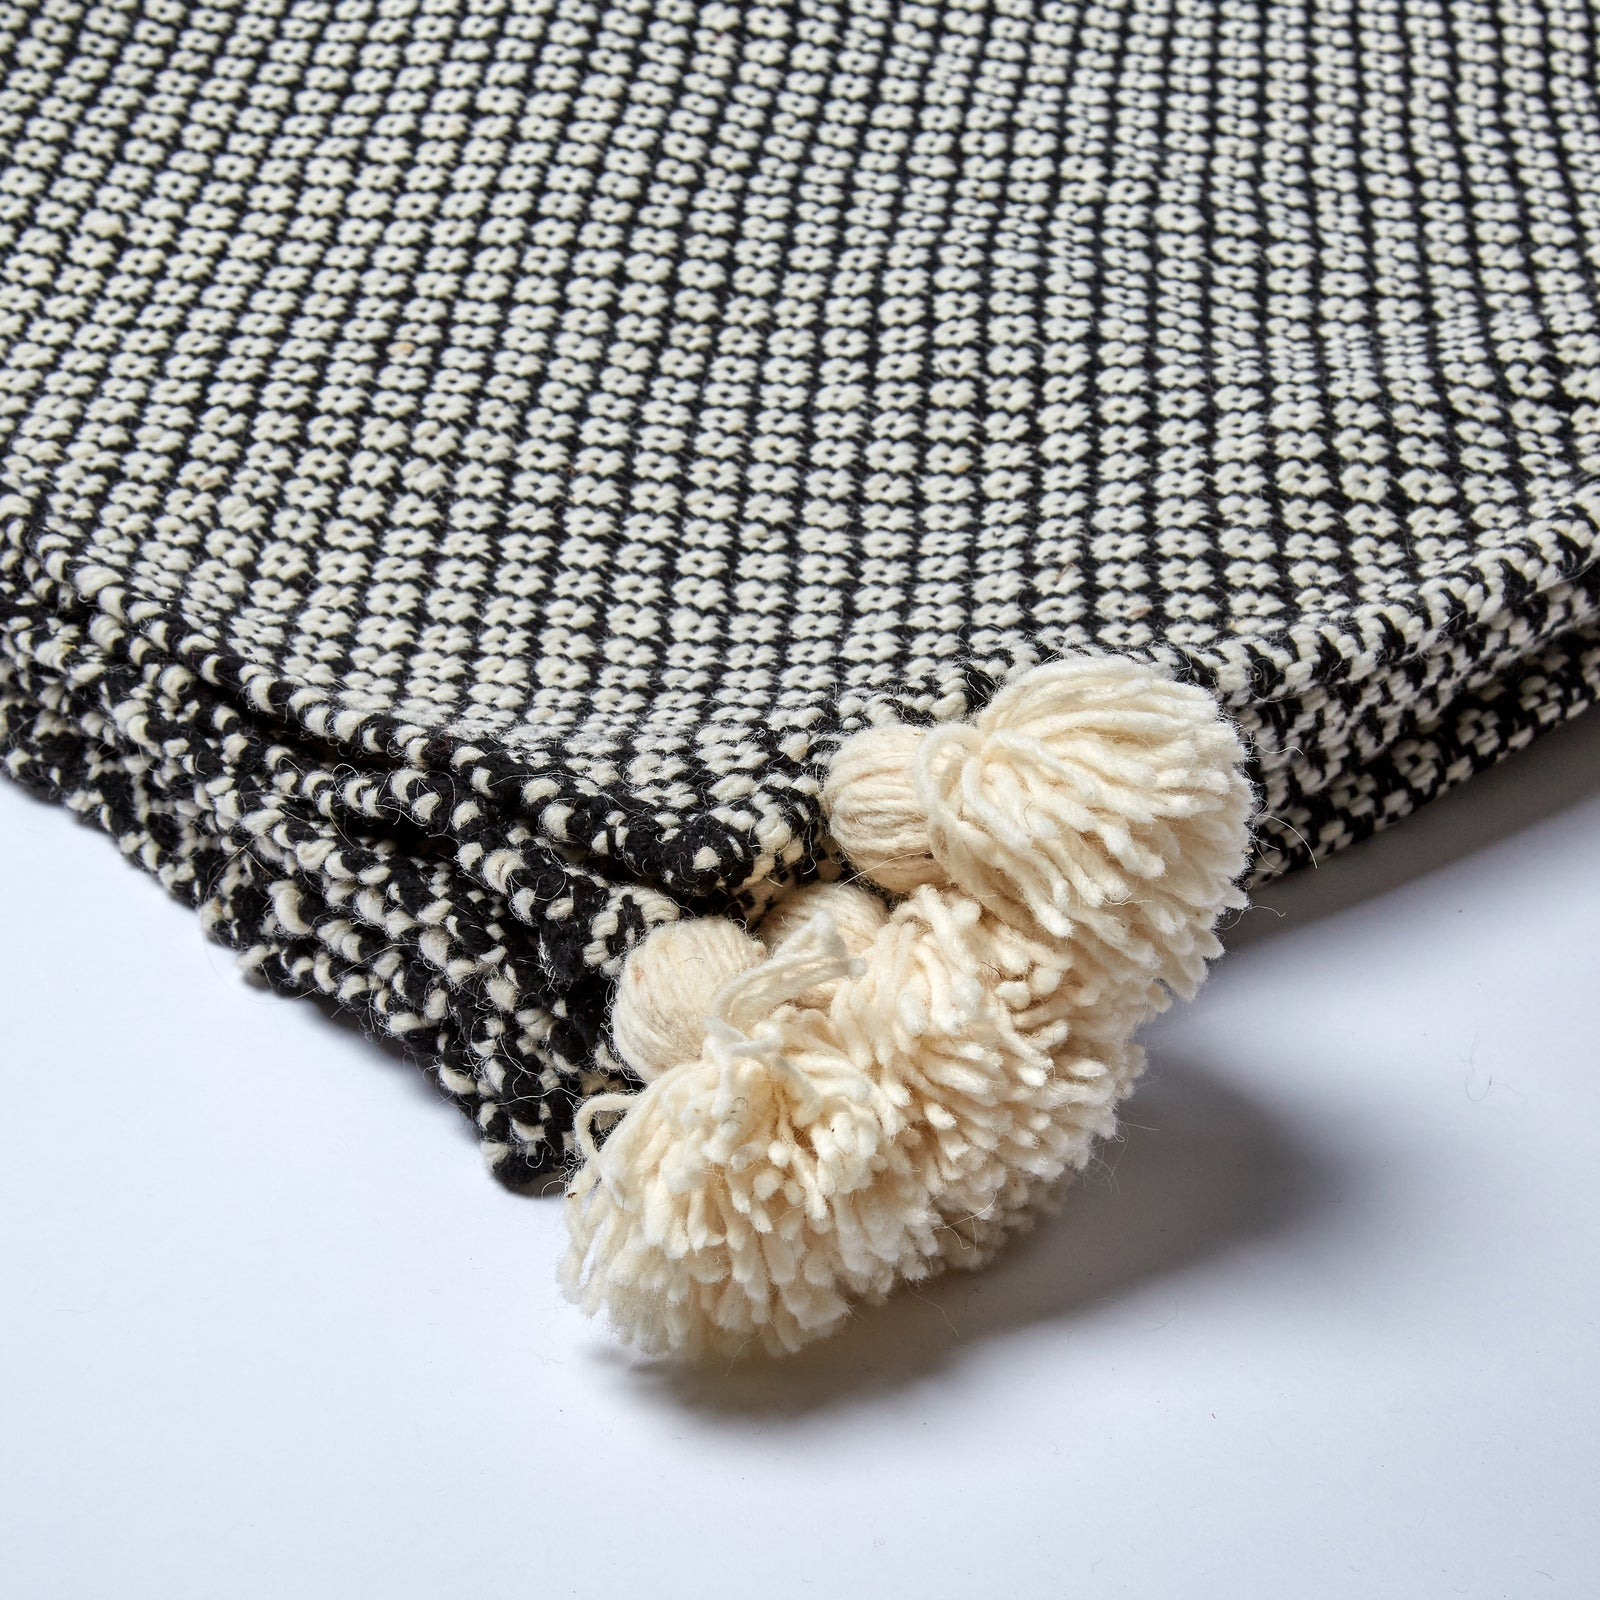 Handwoven in the Atlas Mountains in luscious wool, this accessory is perfectly completed by the oversized, exuberant pom poms which run along the edges.